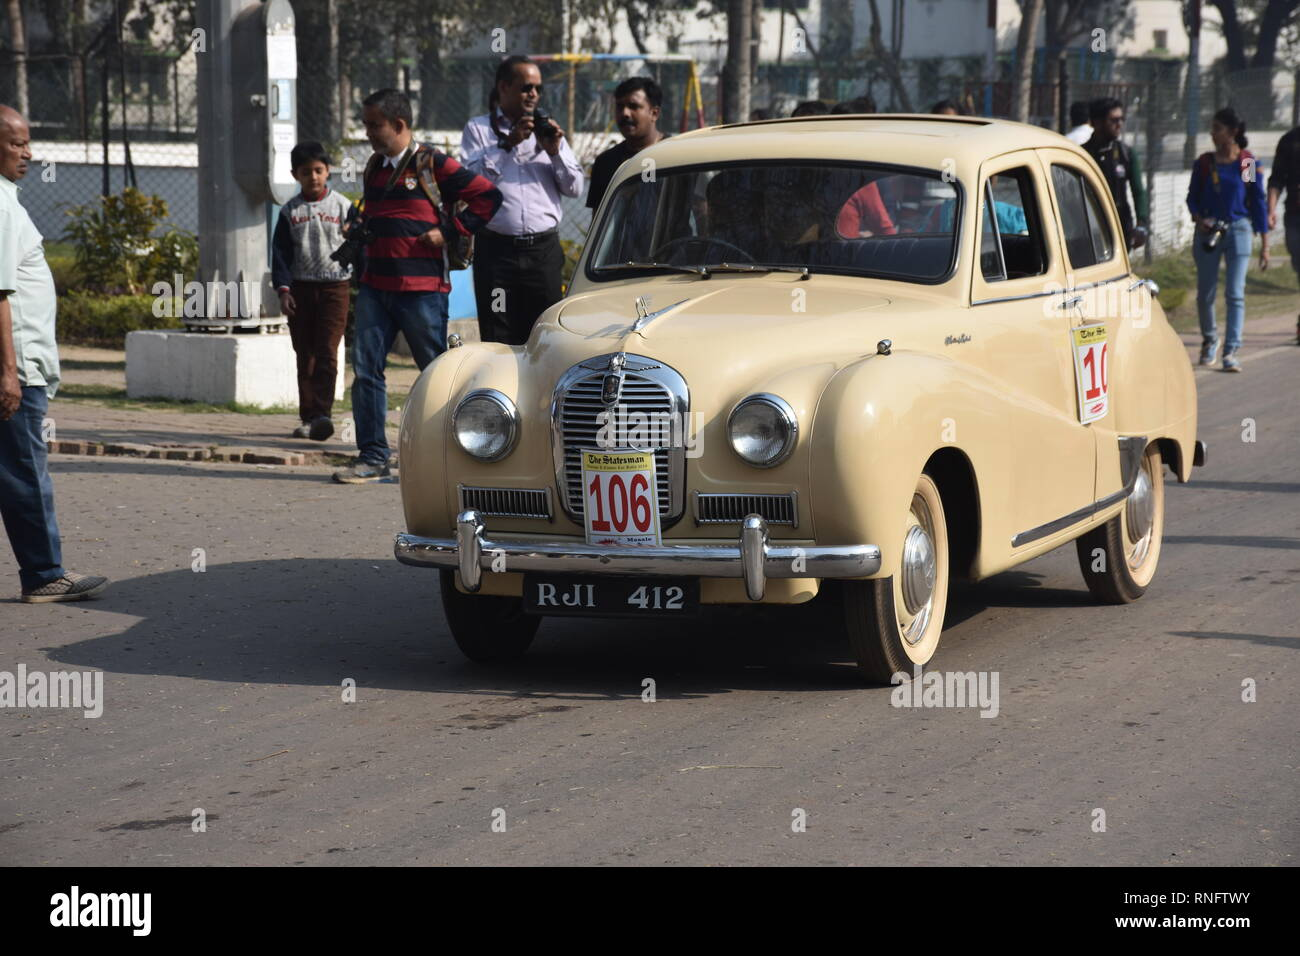 1954 Austin car with 10.6 hp and 4 cylinder engine. RJI 412 India. - Stock Image